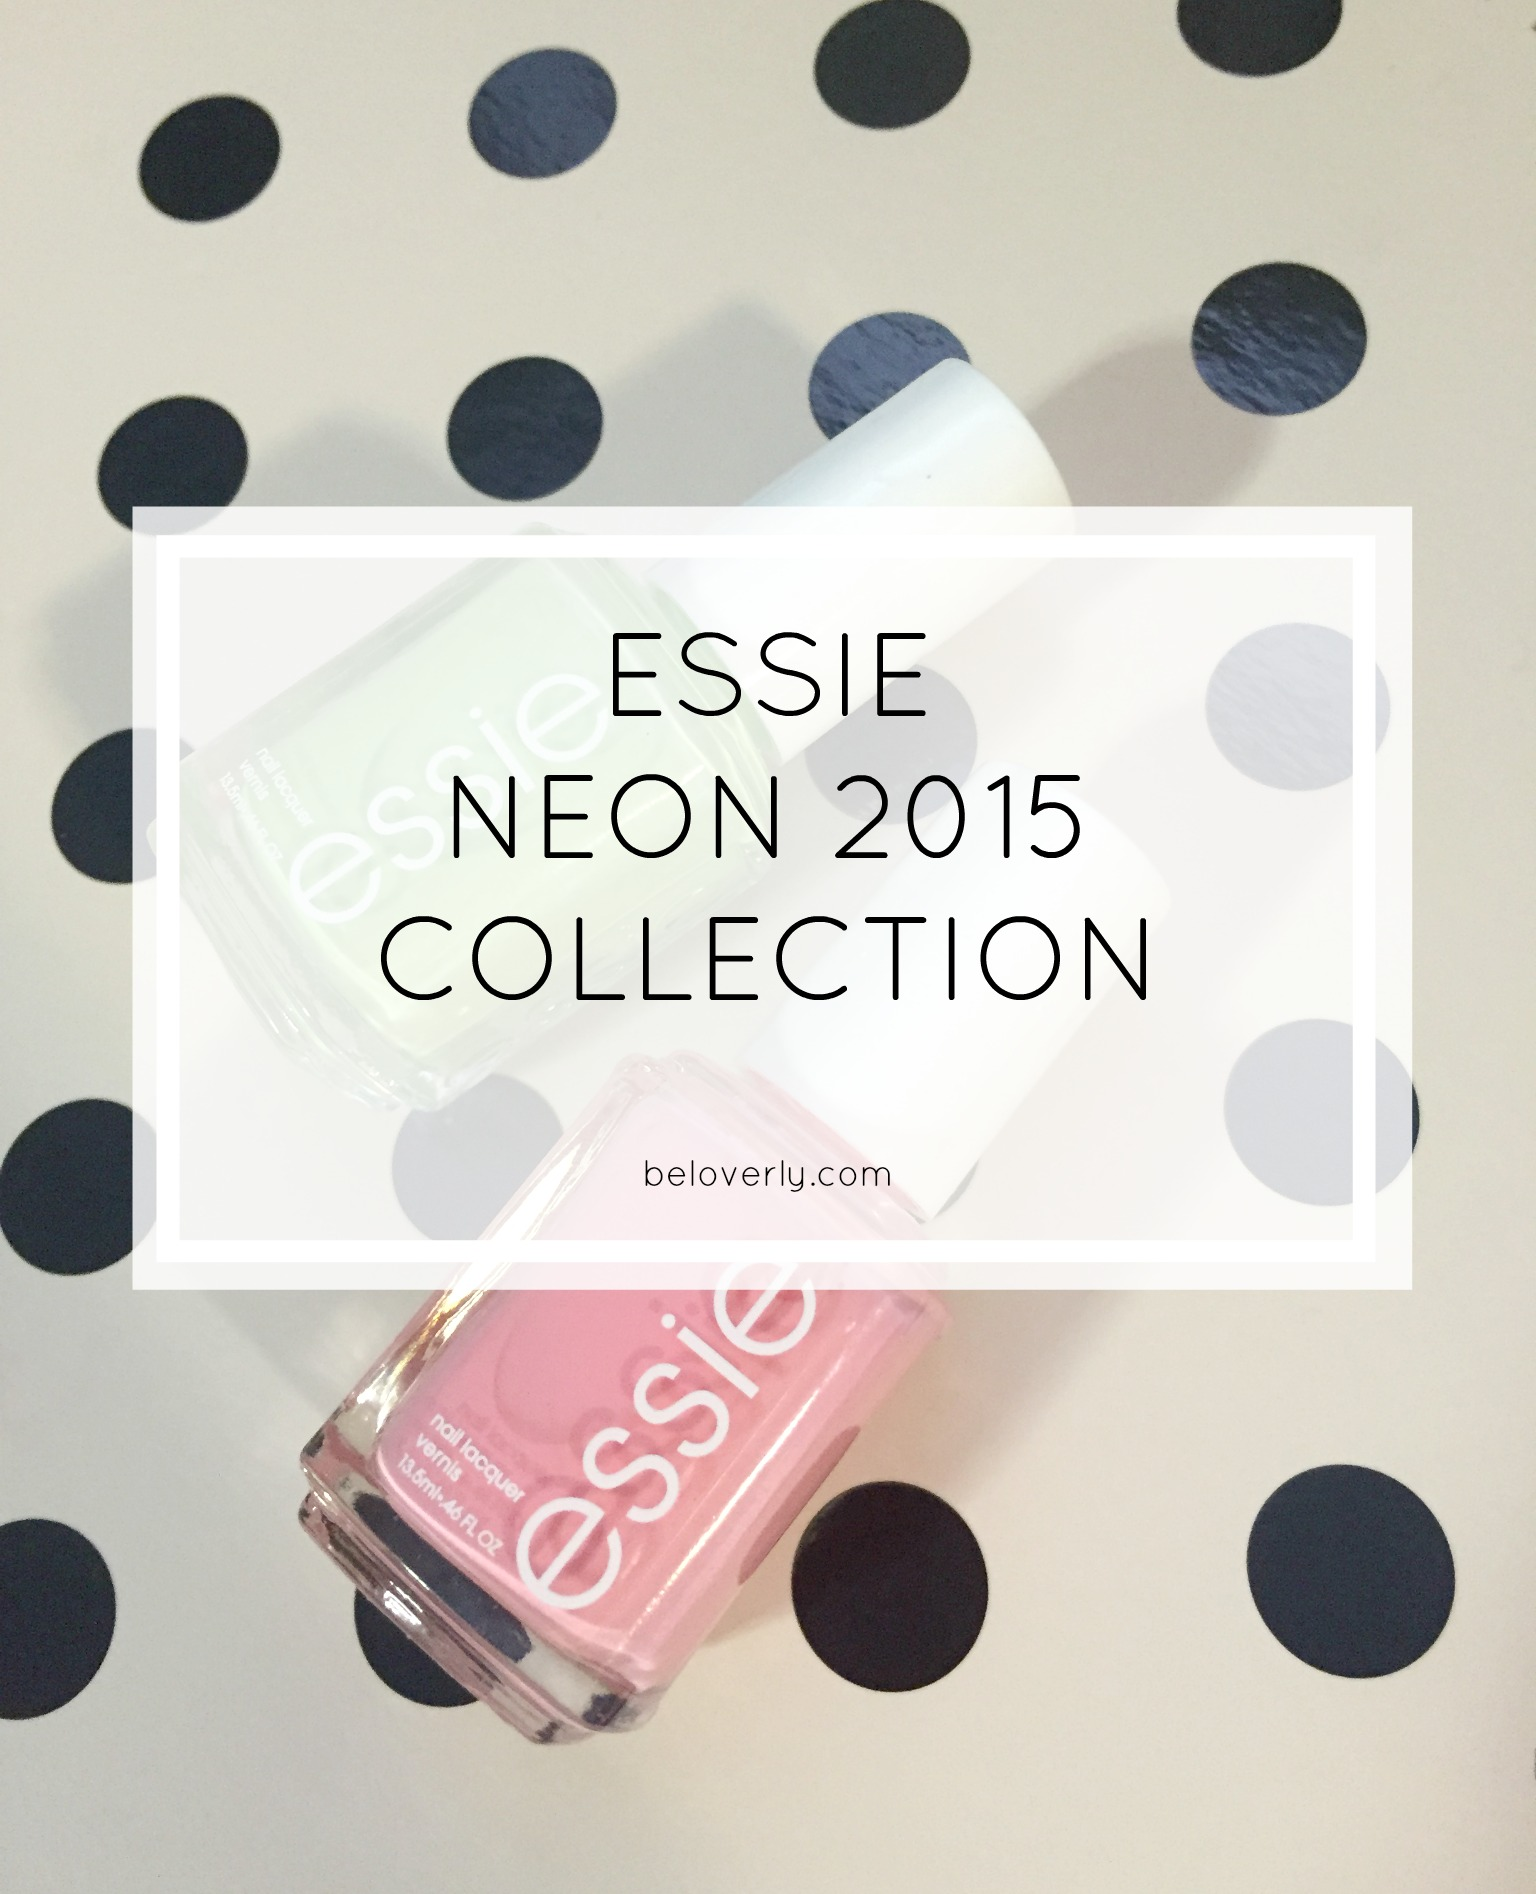 essieneon2015collection